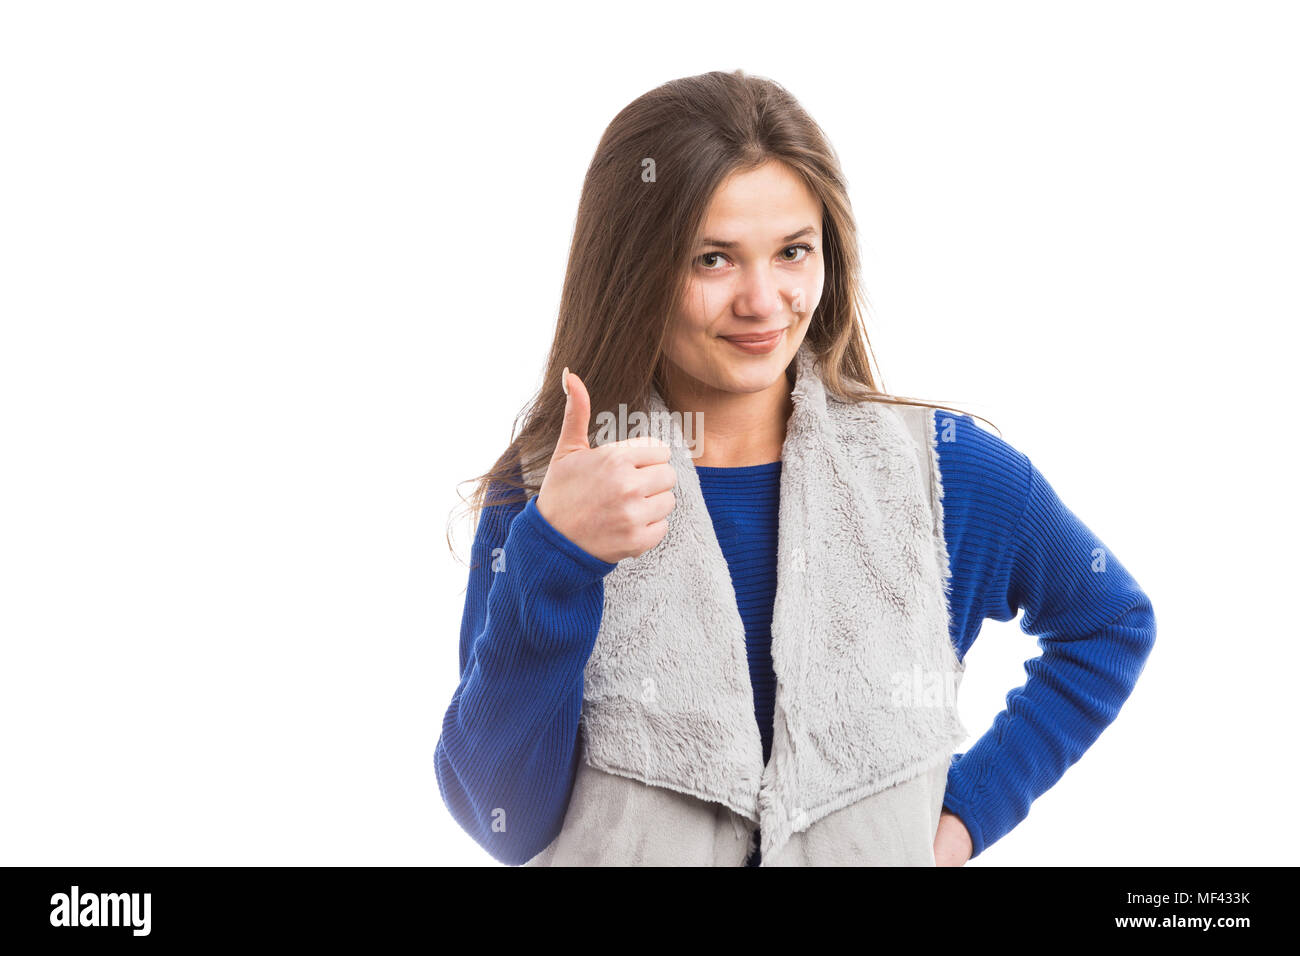 Attractive young woman wearing sweater and vest showing ok gesture and smiling isolated on white background - Stock Image